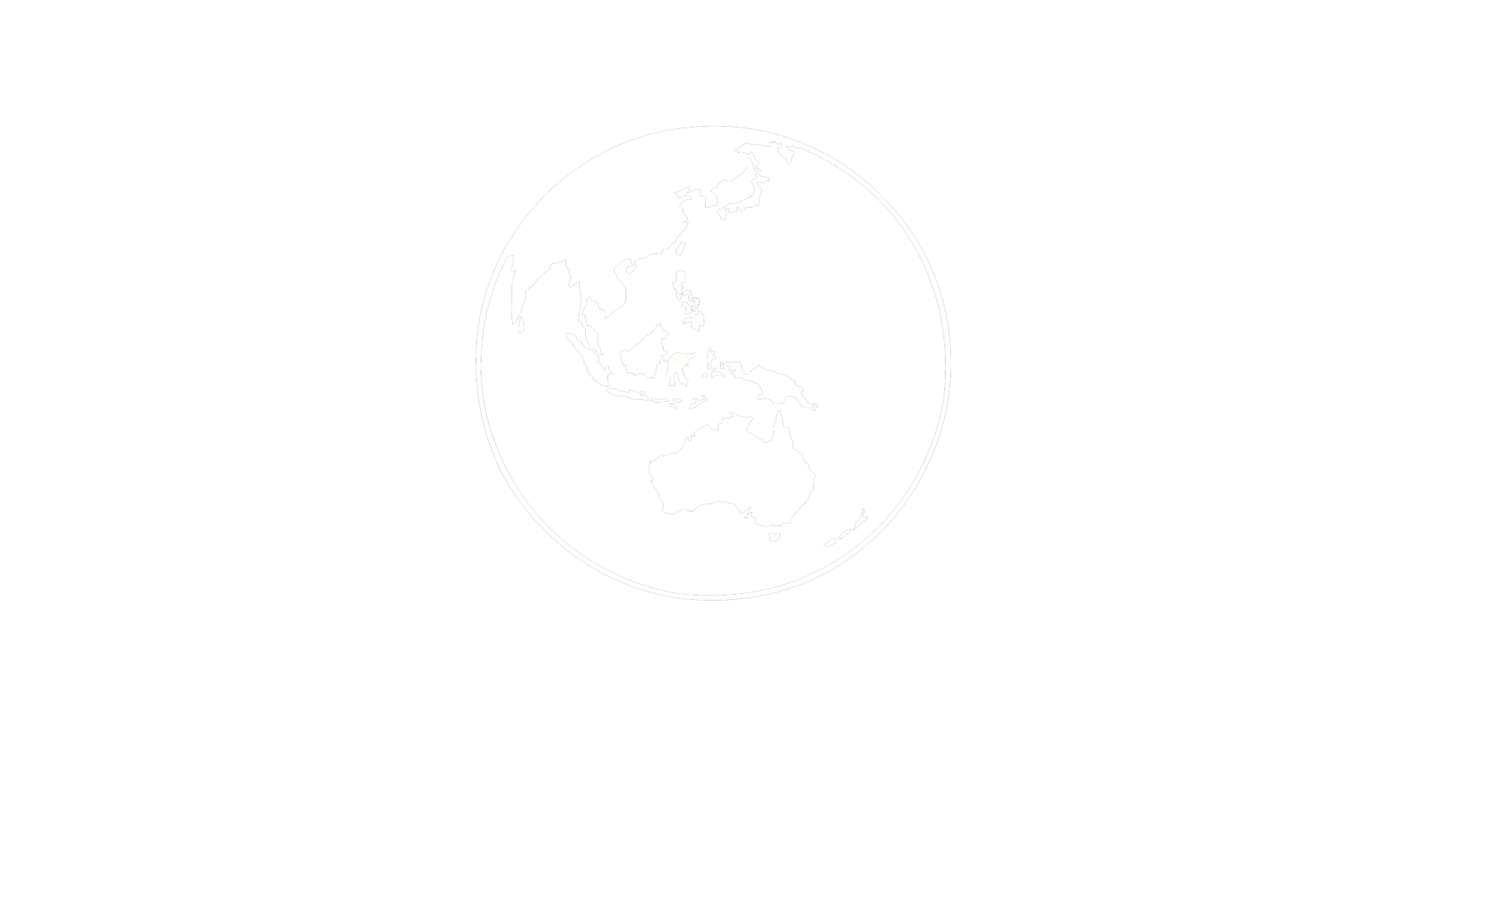 SGMissiology